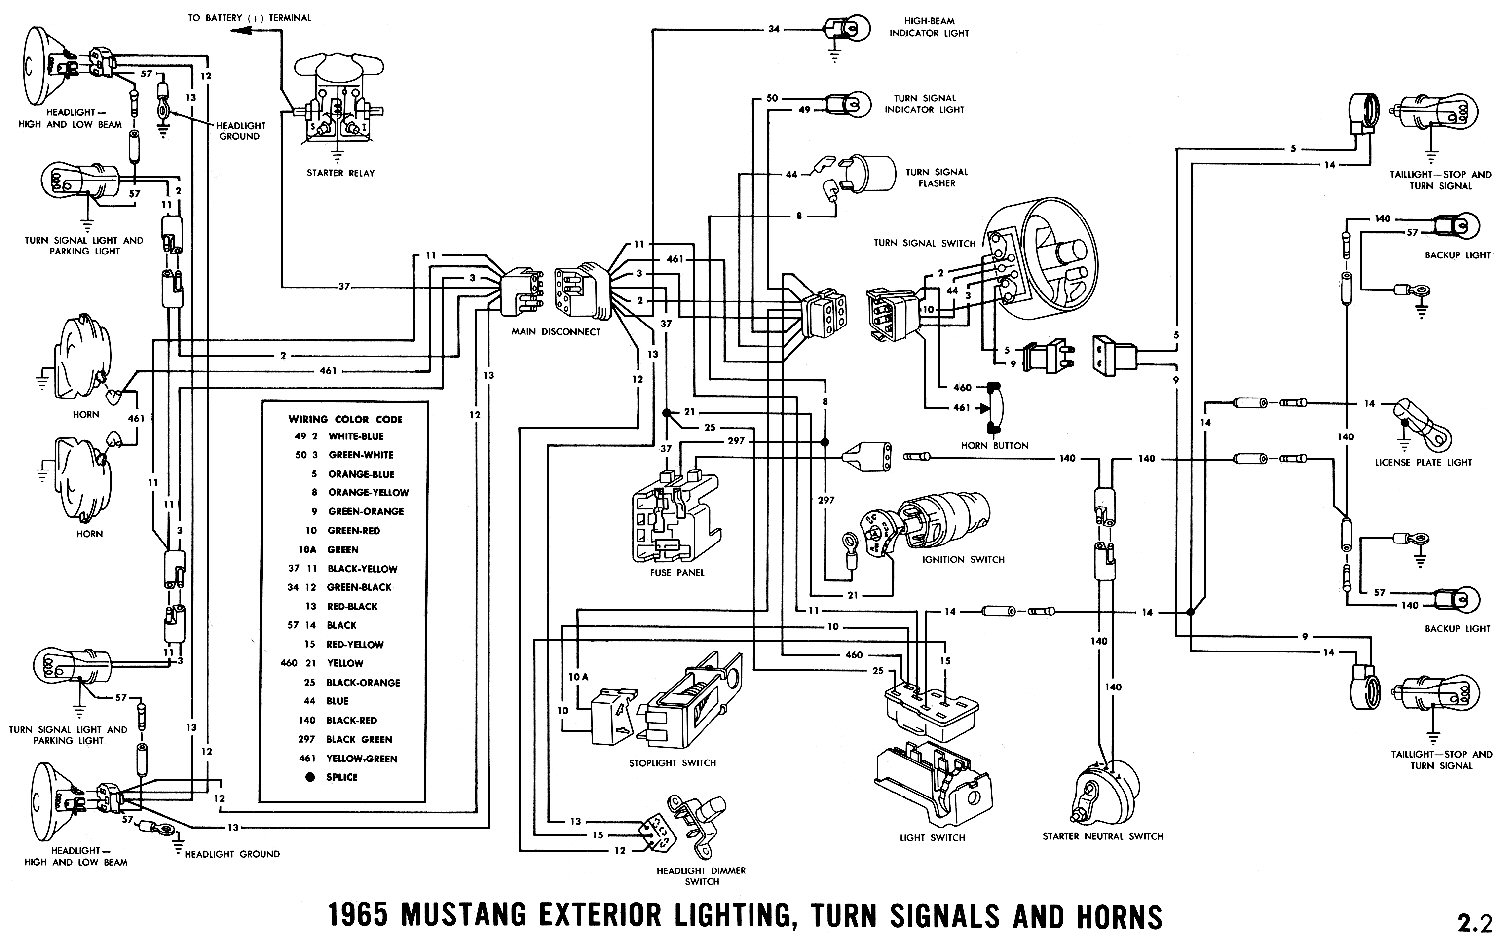 1972 mustang wiring diagram